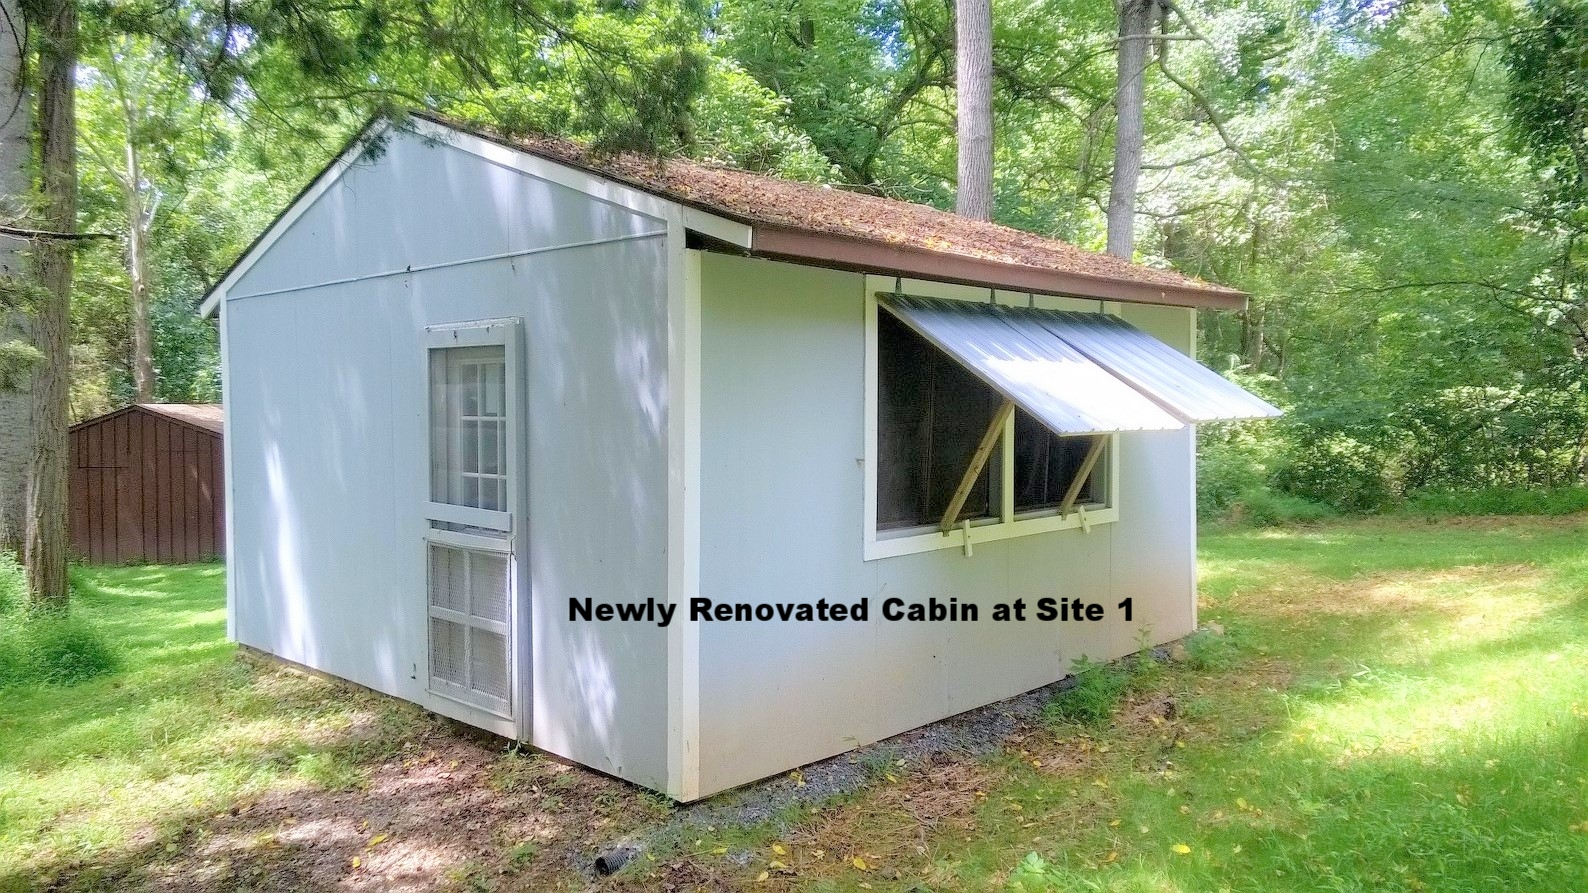 2017 Renovated Cabin A Site 1.jpg